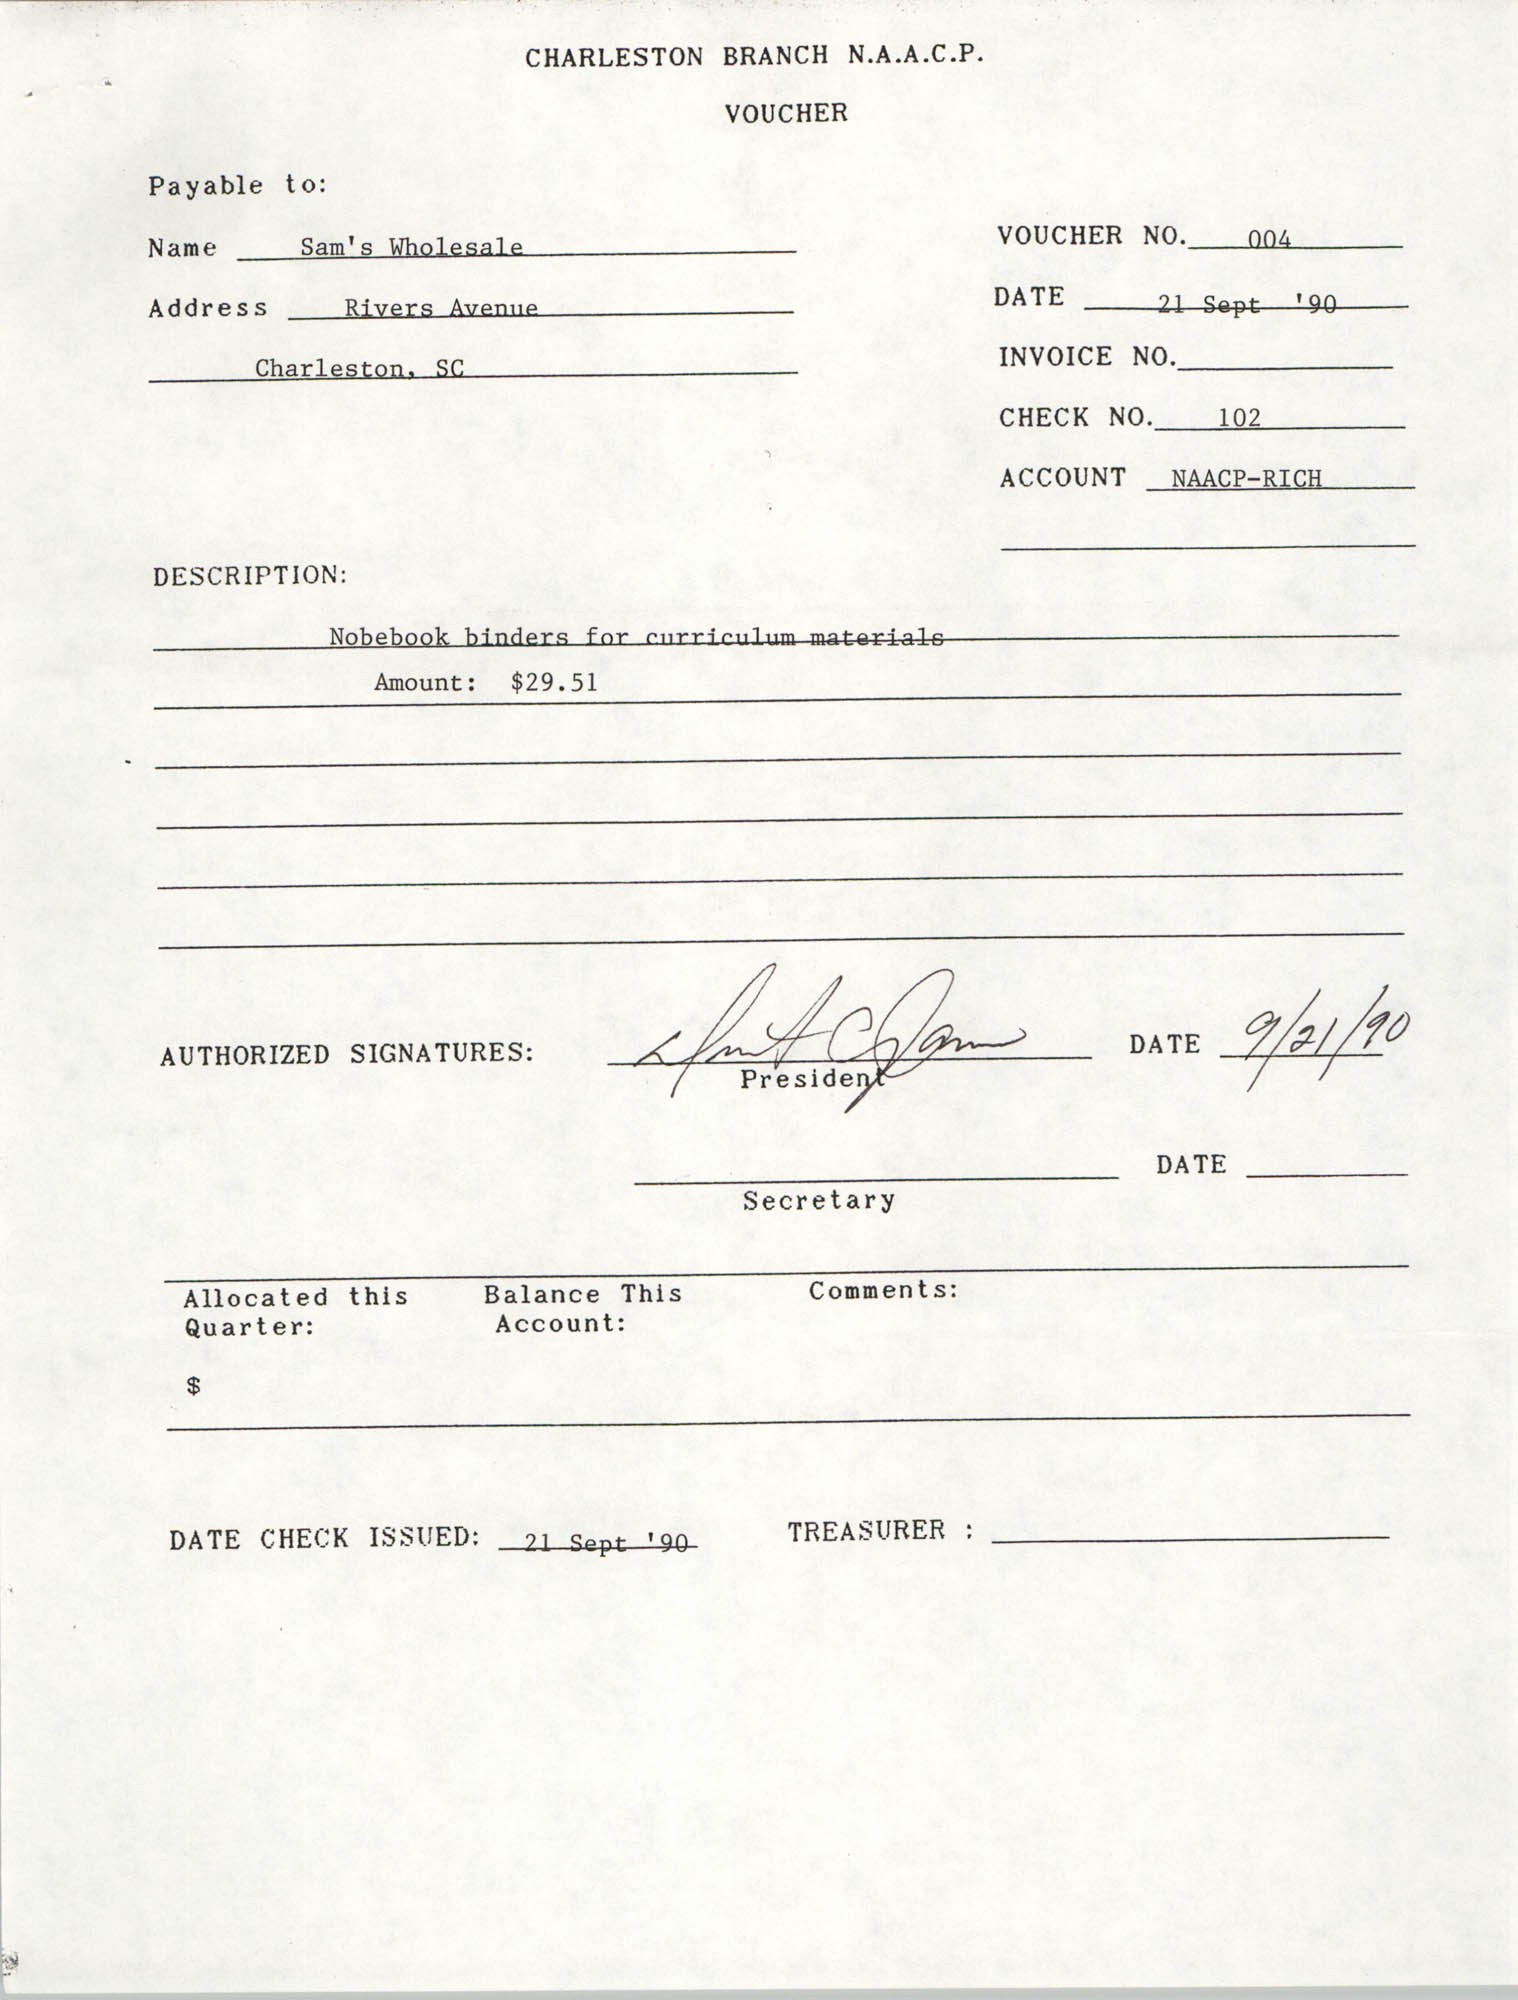 Voucher, National Association for the Advancement of Colored People, Sam's Wholesale, Dwight C. James, September 21, 1990